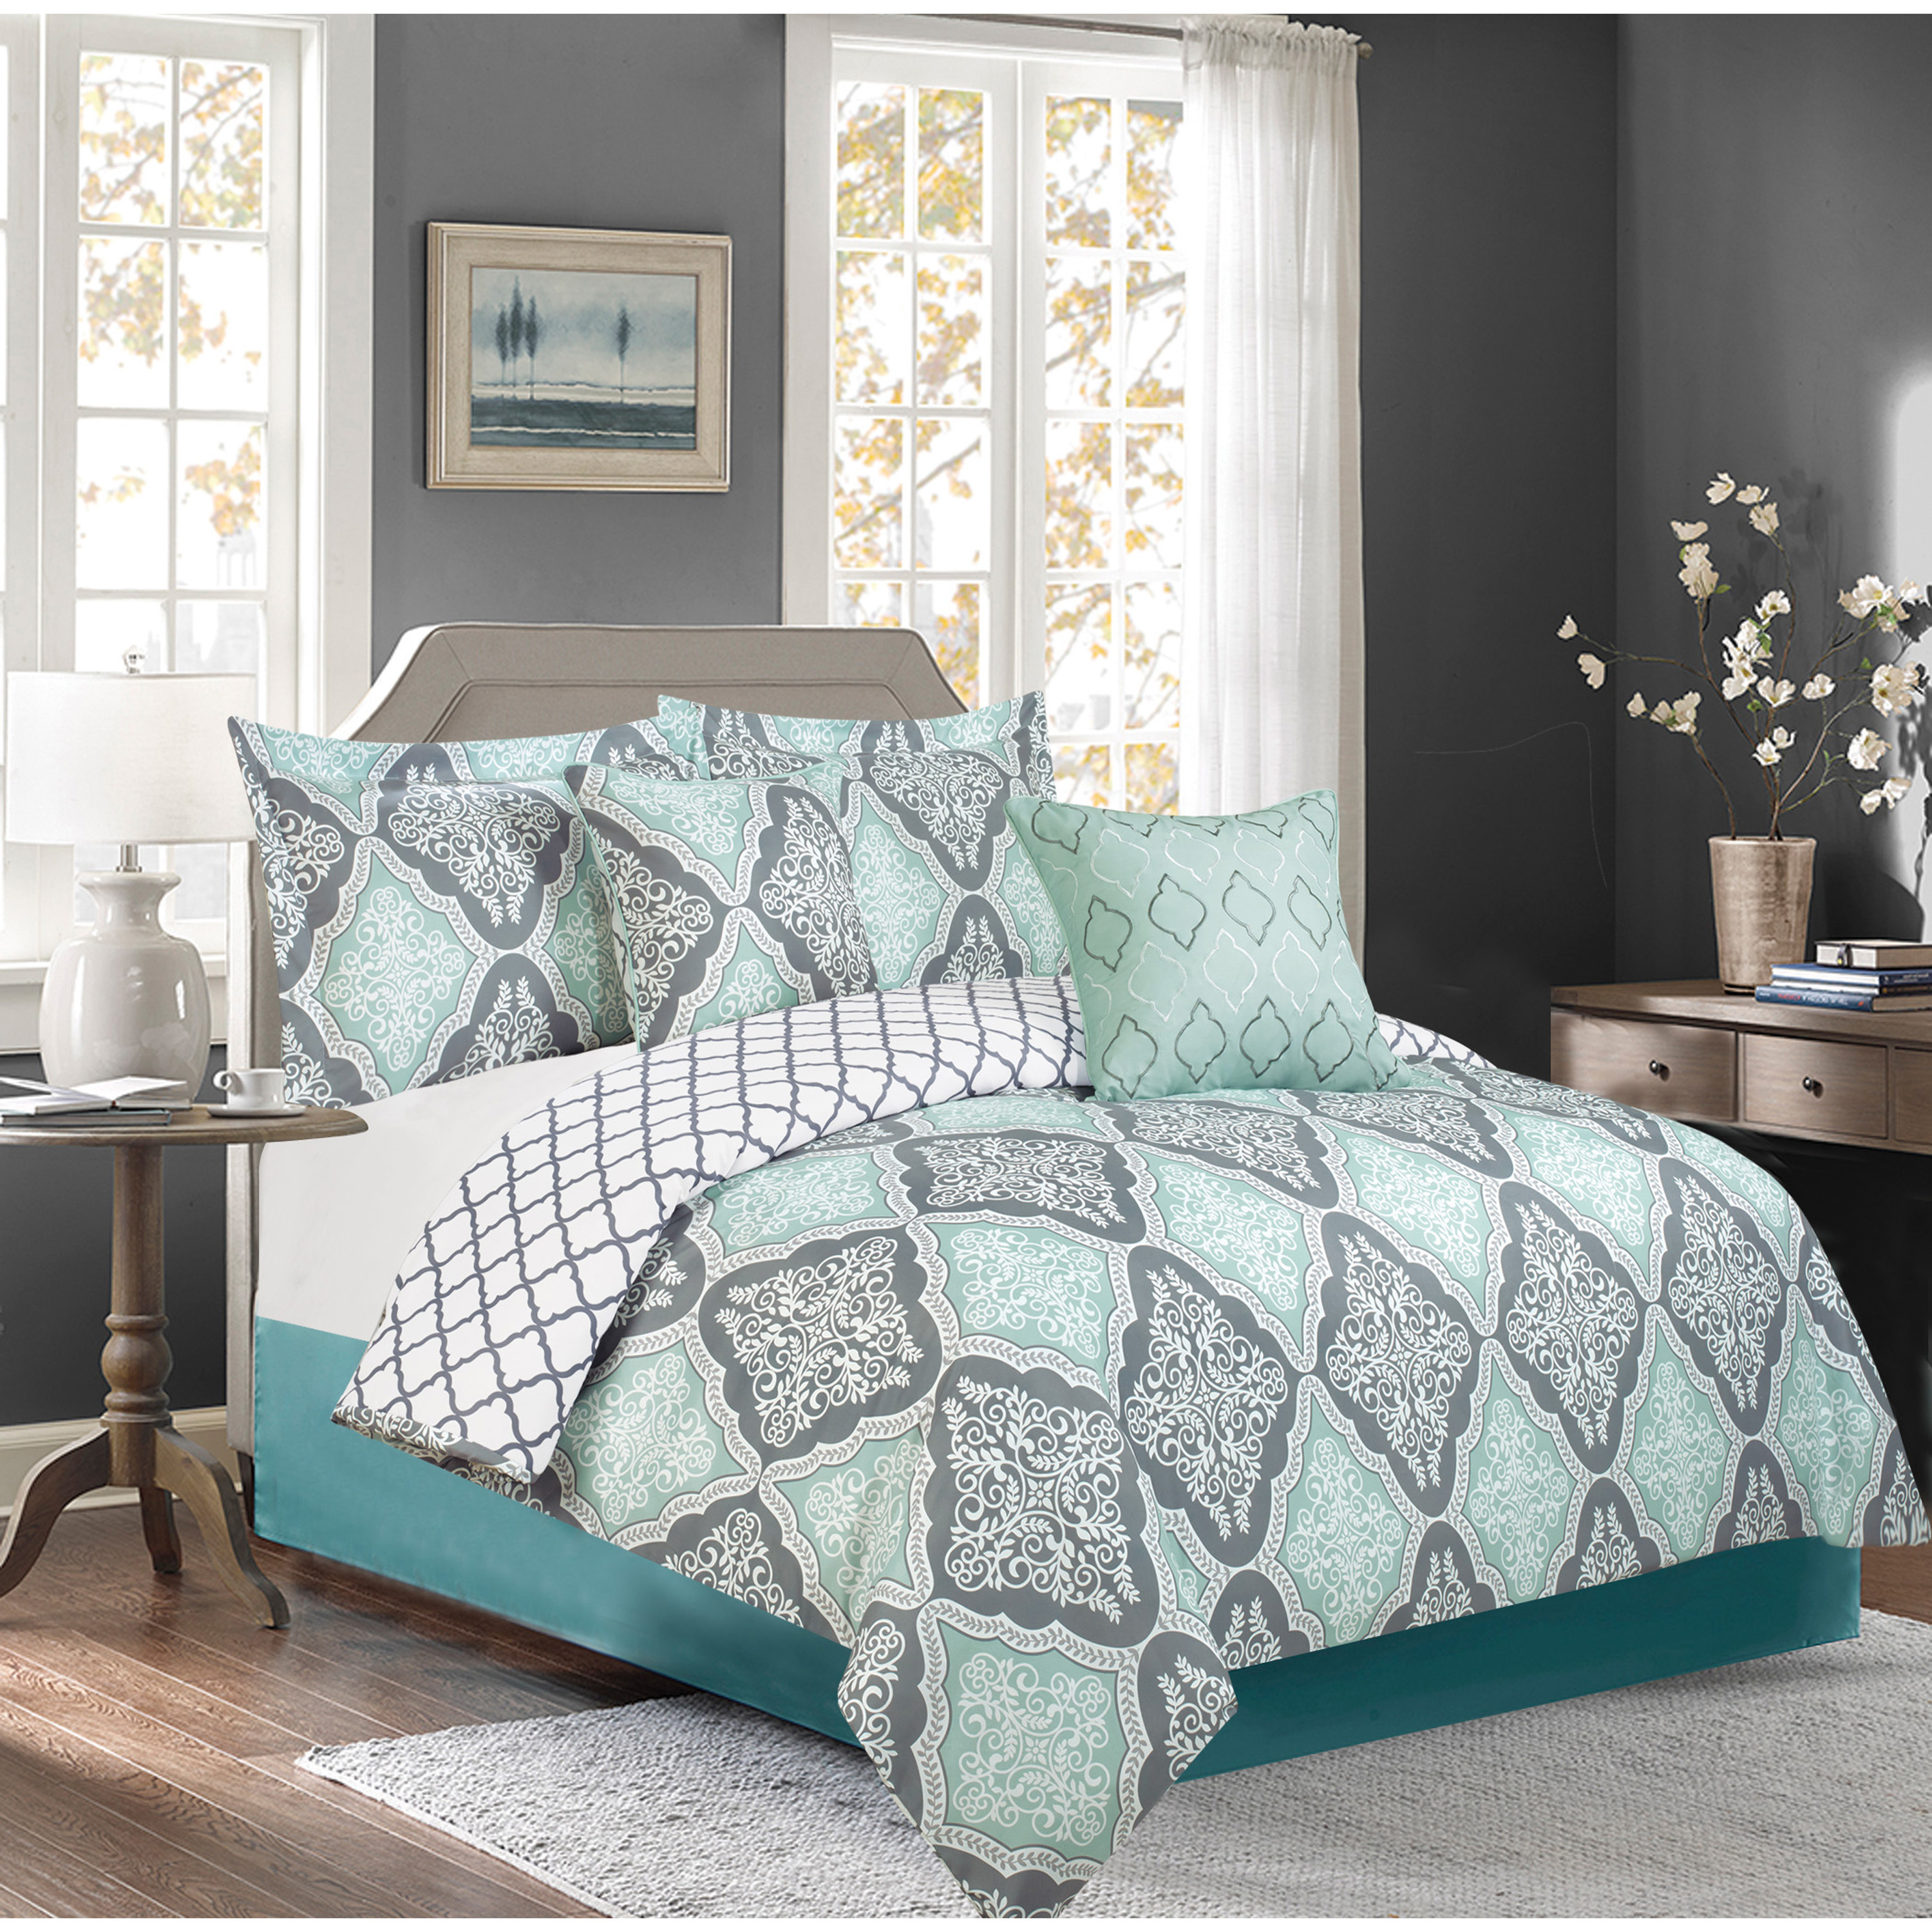 katia -5 piece printed revsrsible  comforter set